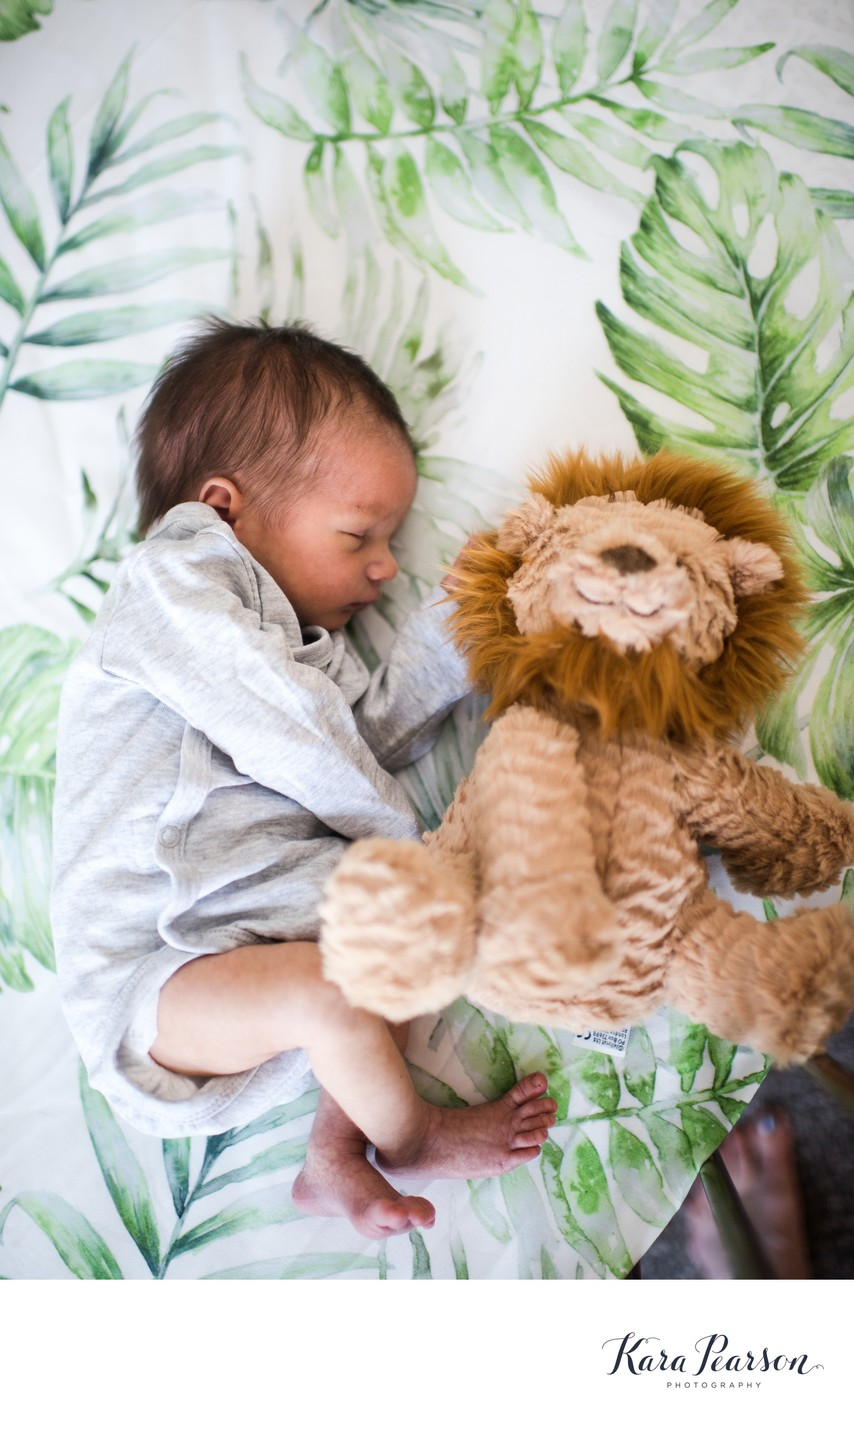 Newborn Baby Sleeps With Stuffed Animal